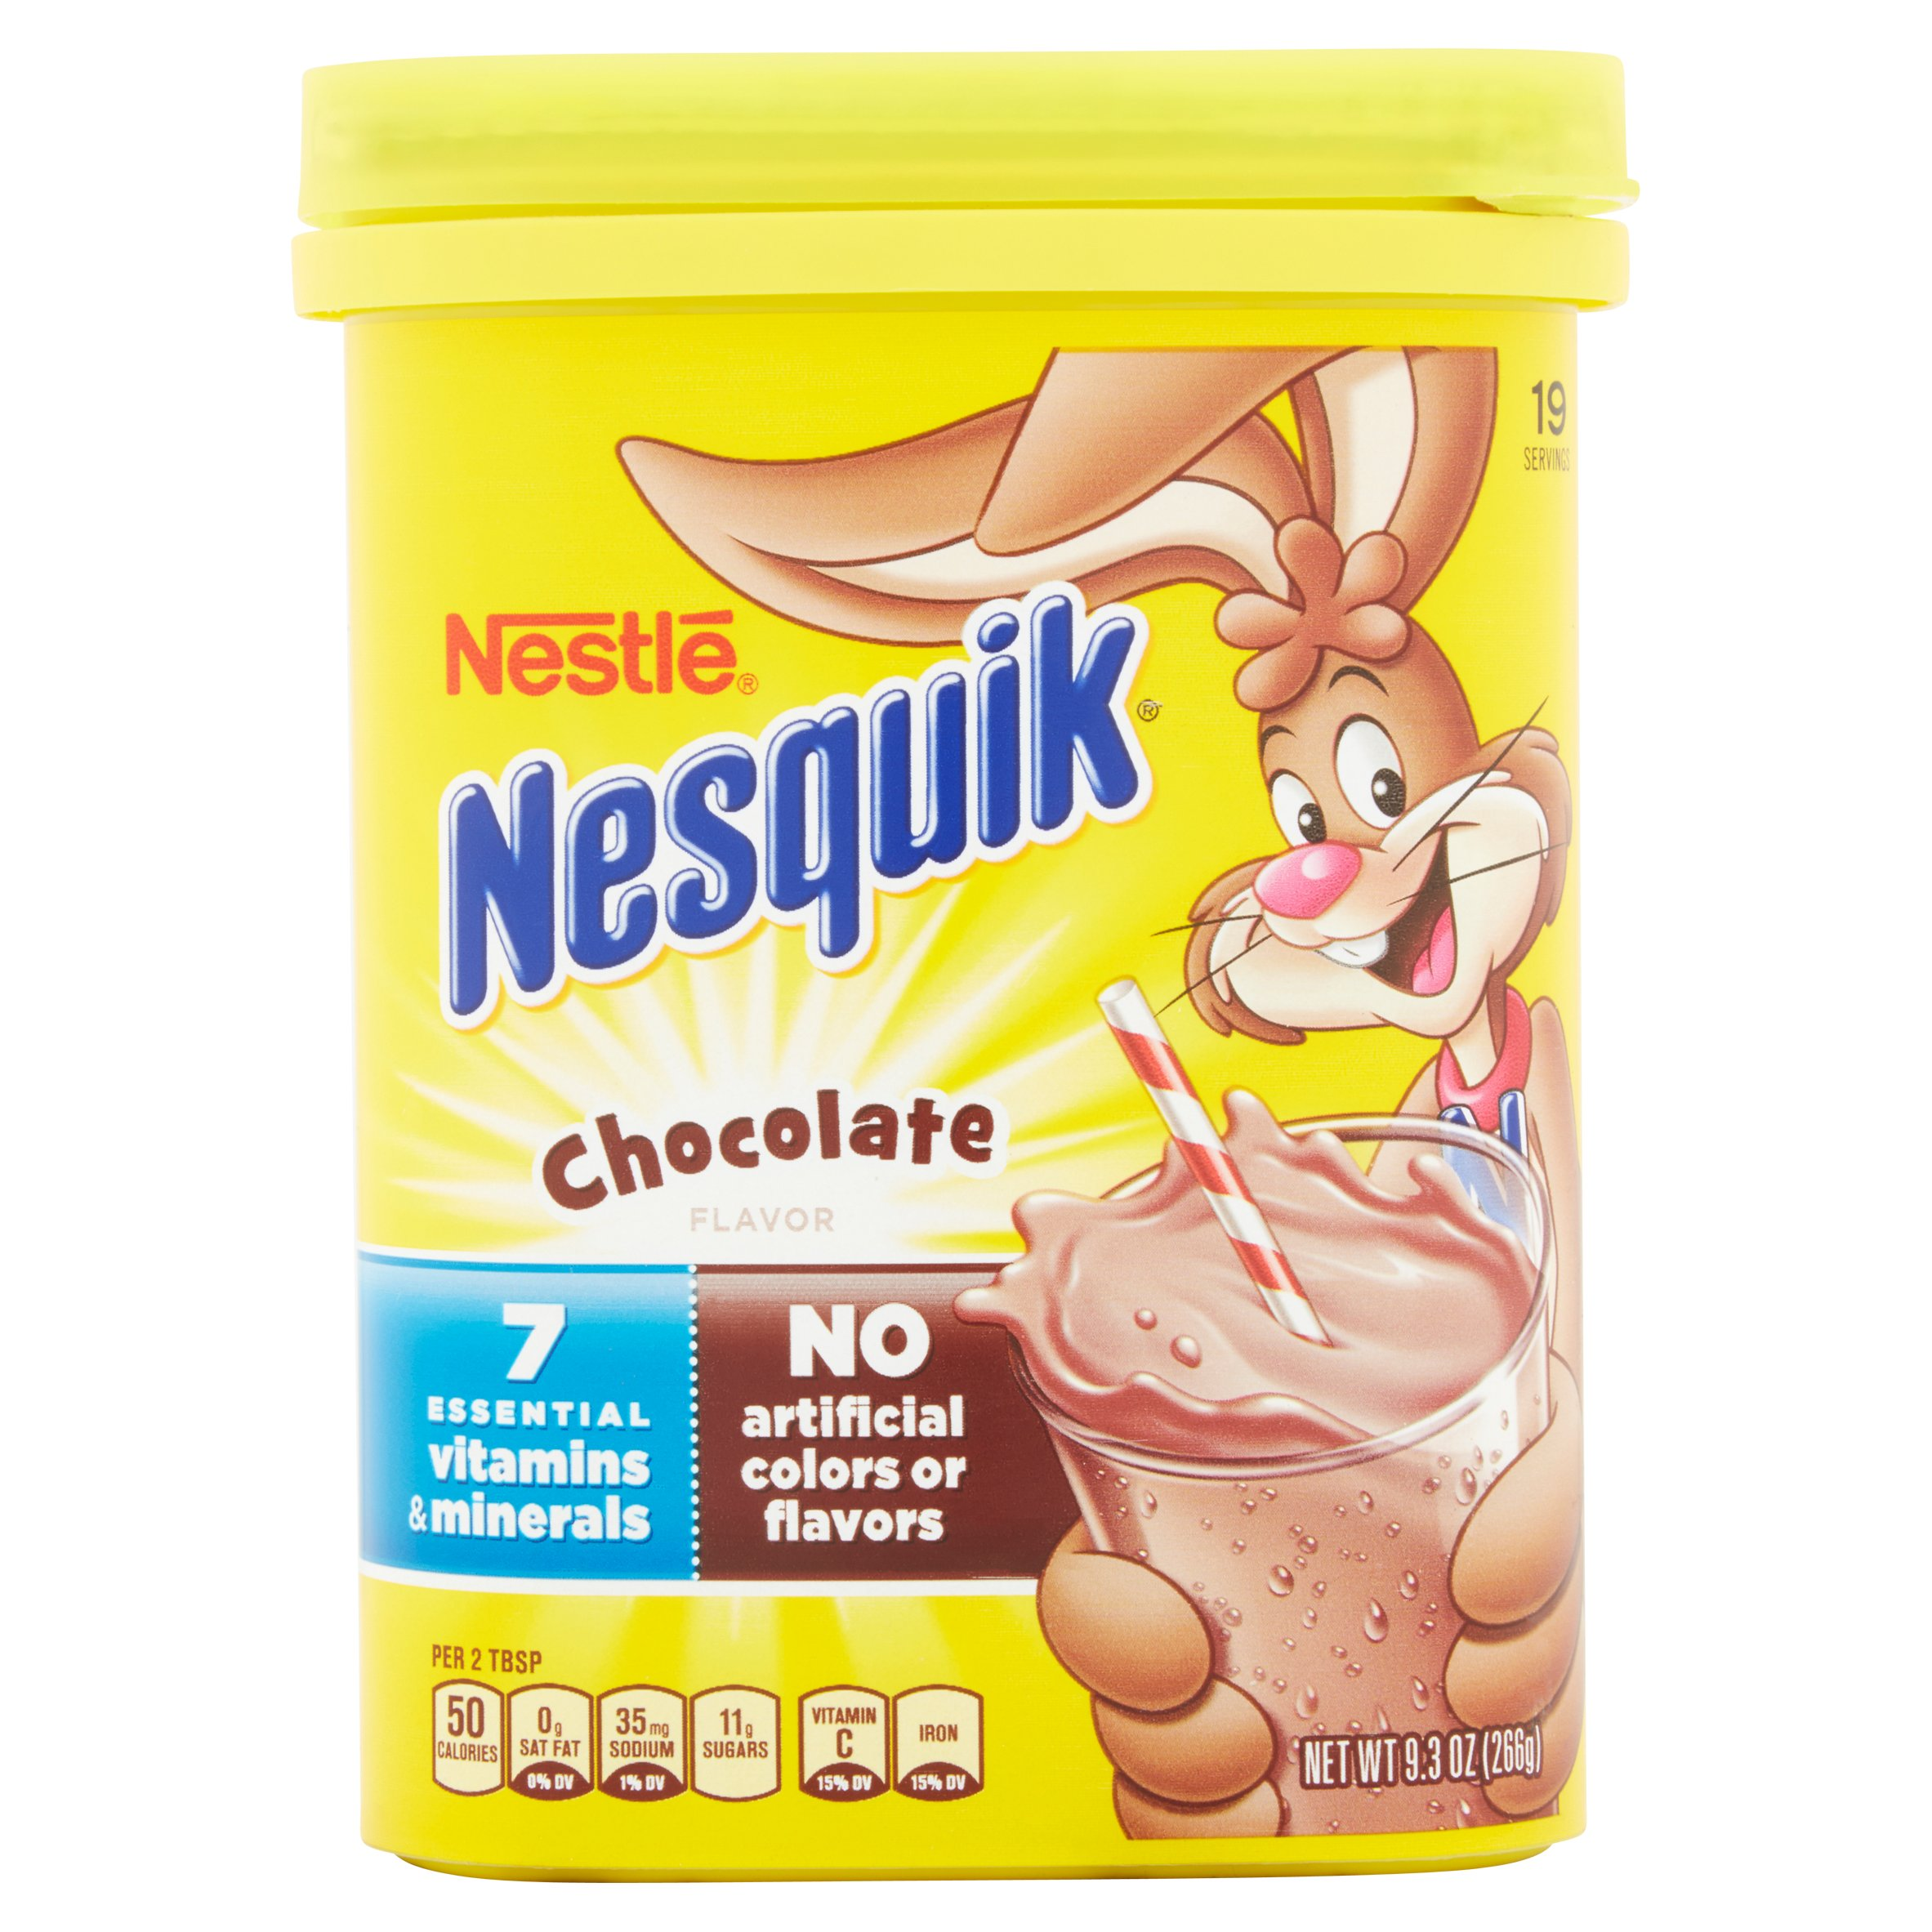 NESTLE NESQUIK Chocolate Flavored Powder 9.3 oz. Canister